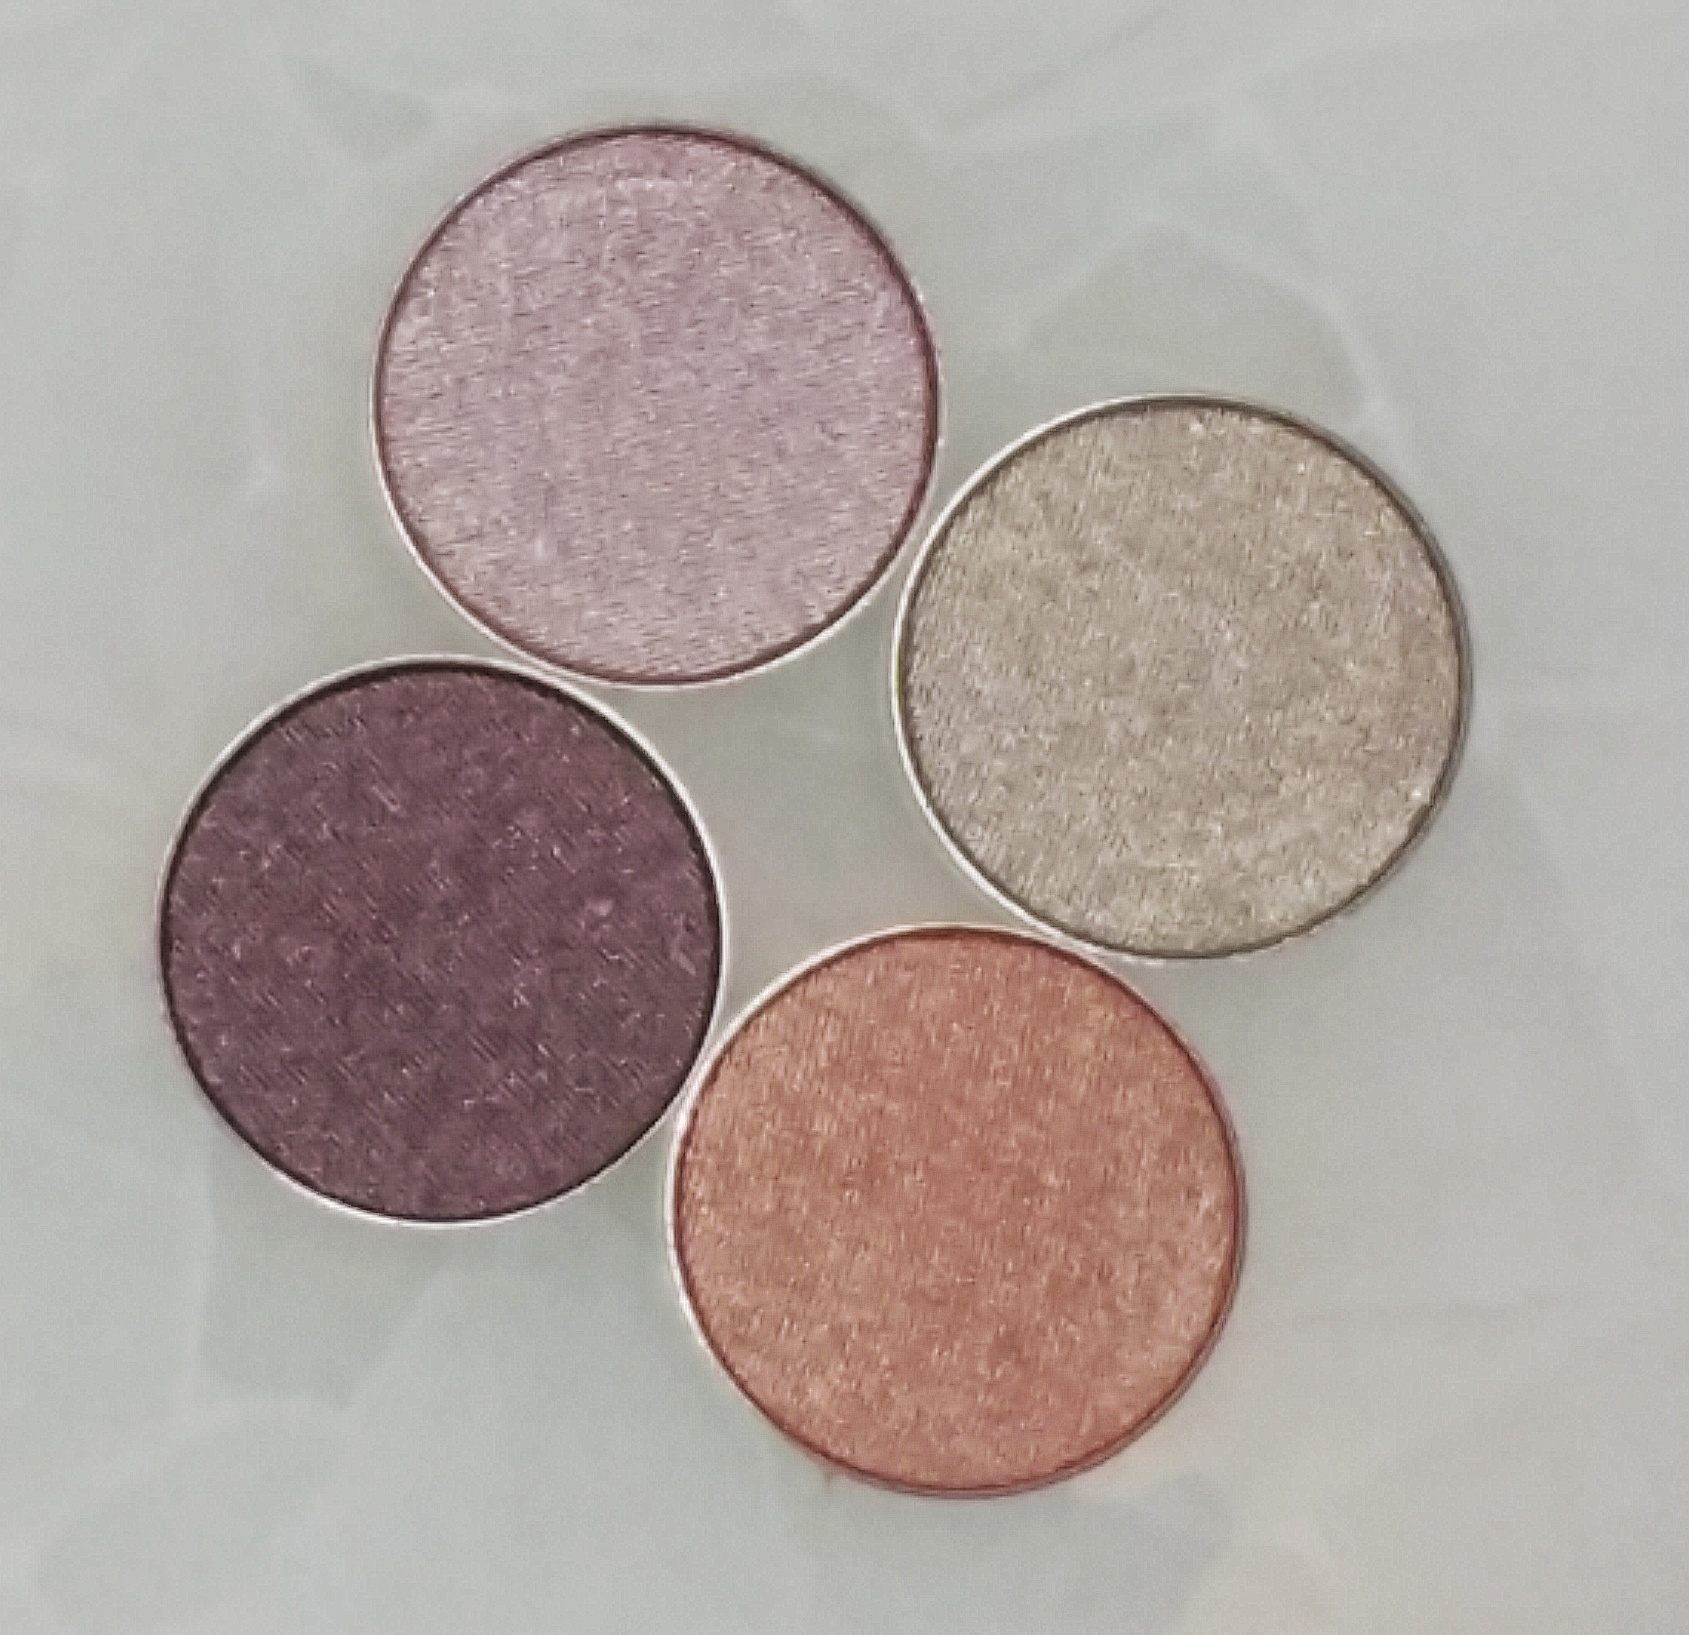 makeup, beauty junkees, beauty, swatches, lipsticks, eye shadows, matte liquid lipsticks, eye shadow, highlight, highlight duo, new makeup, affordable makeup, highend makeup, quality makeup, swatches, makeup review, amazon makeup,